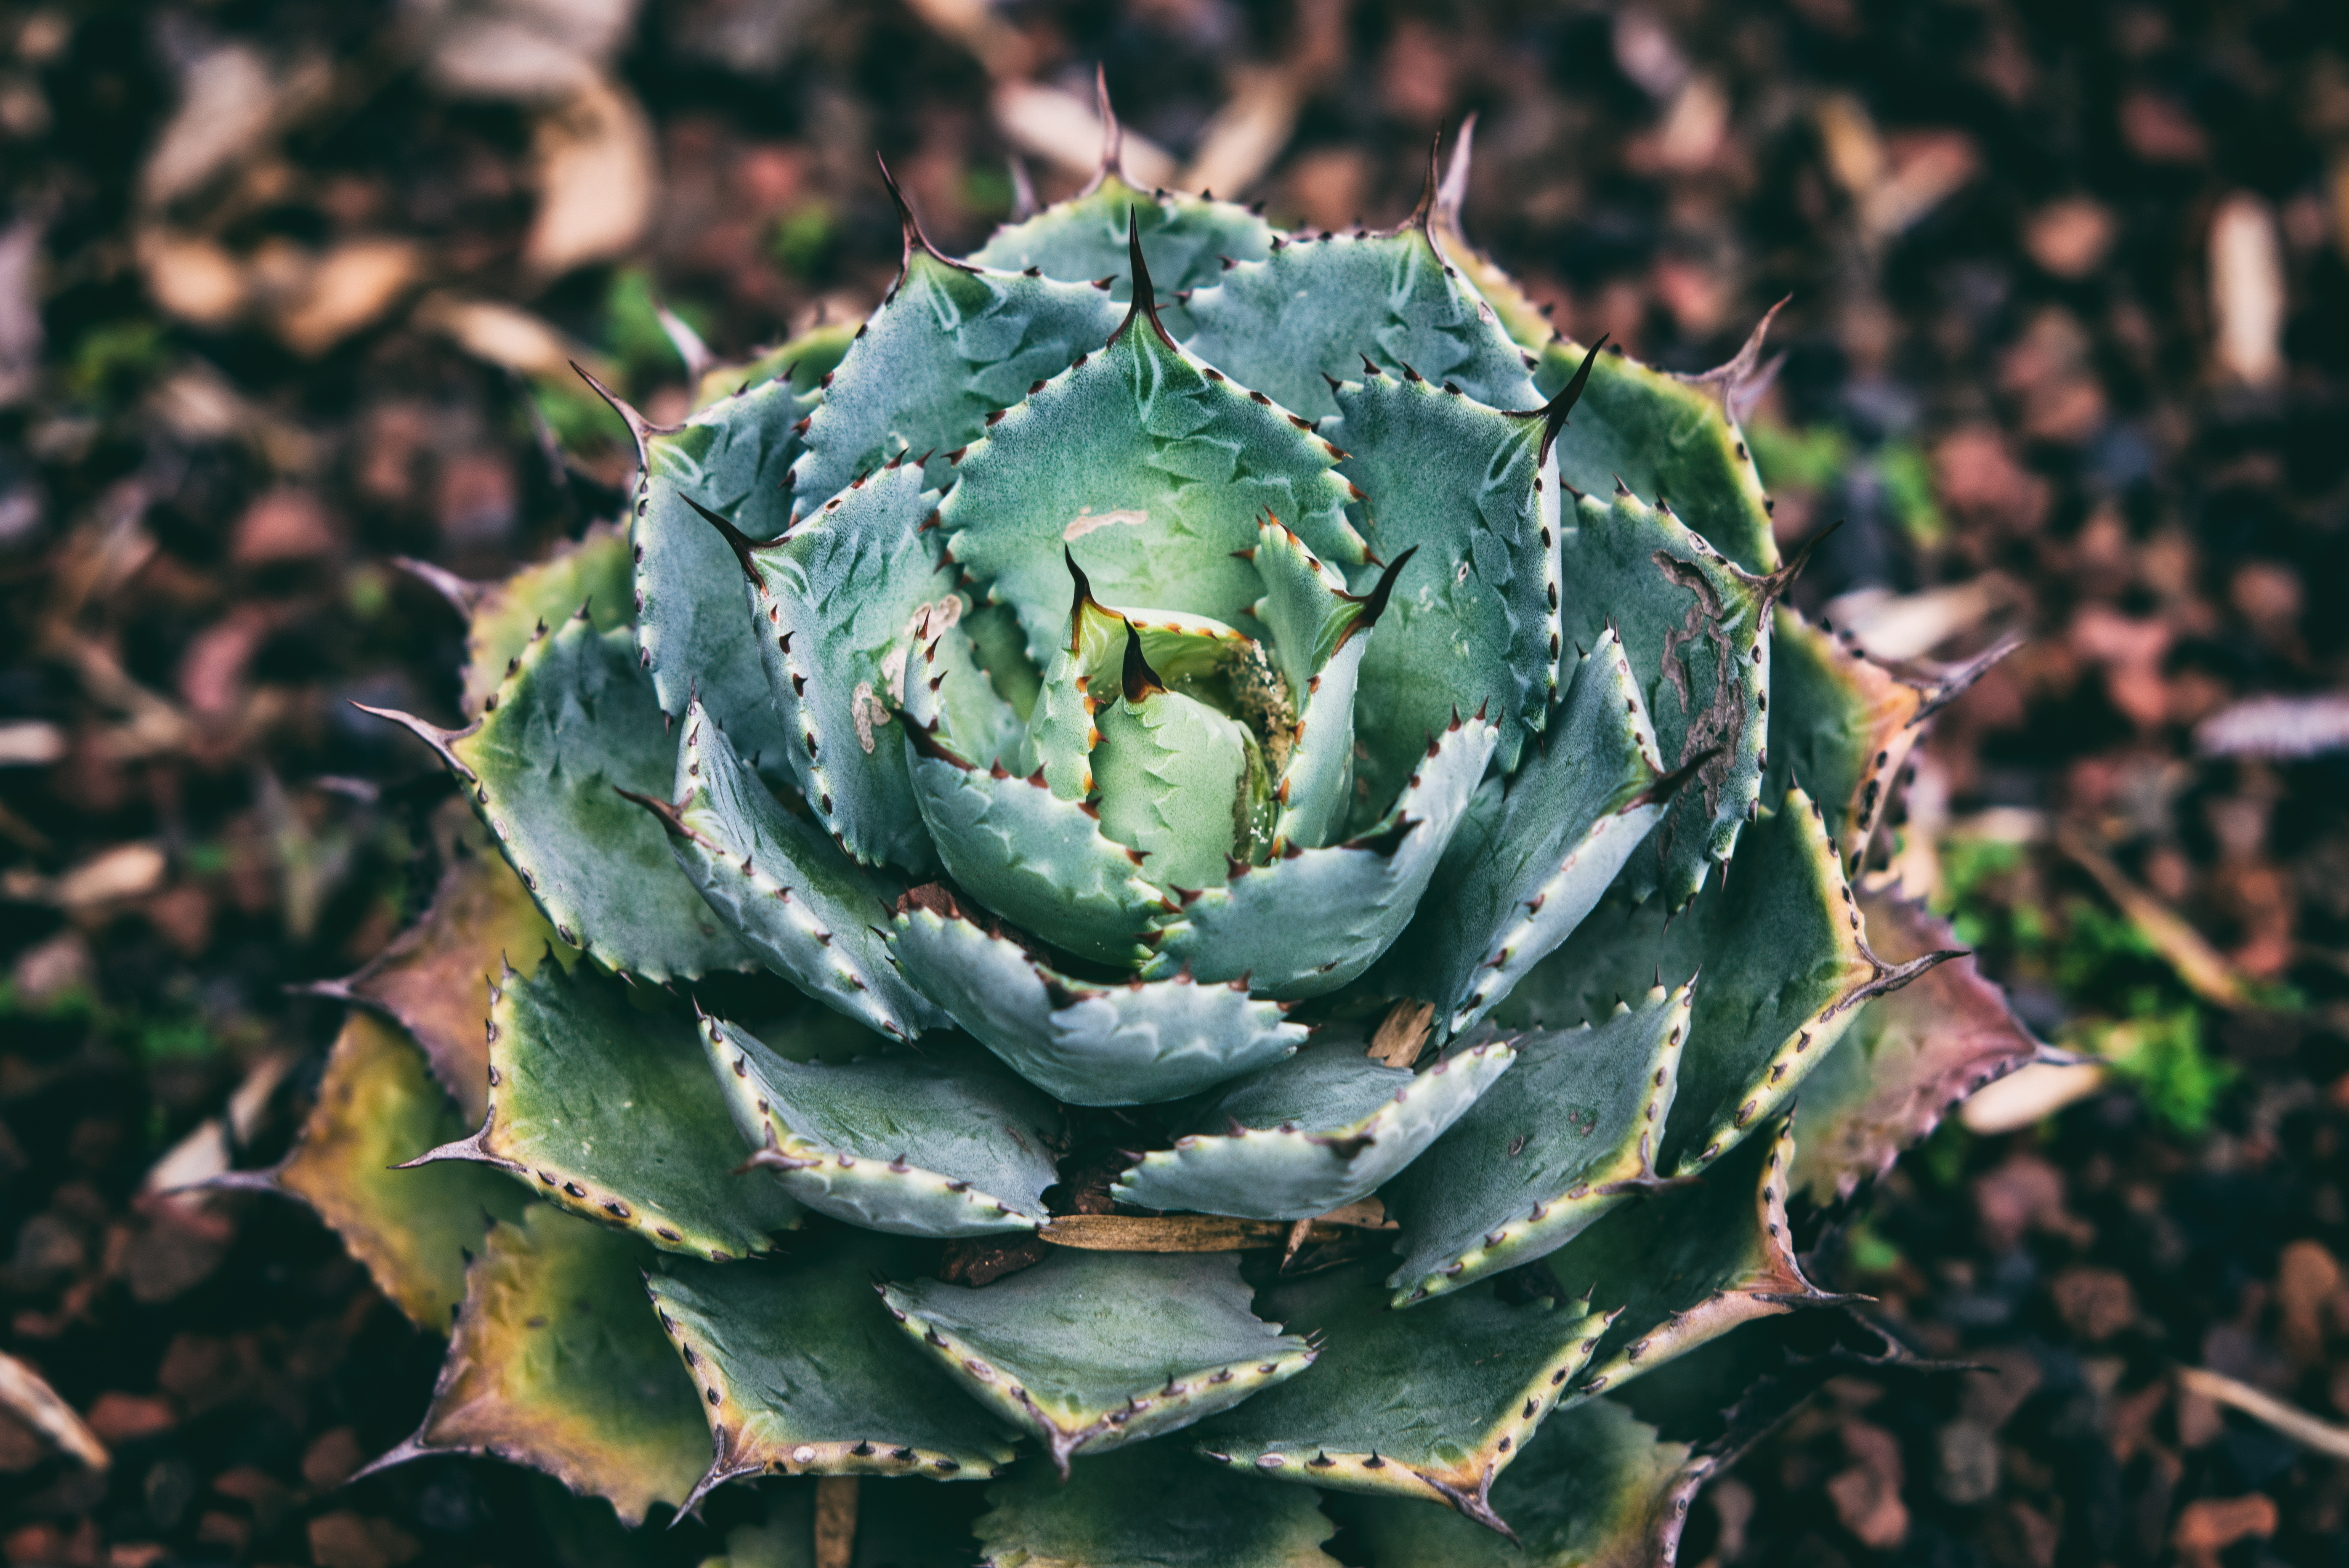 succulent  plant  spiky and nature hd photo by armando